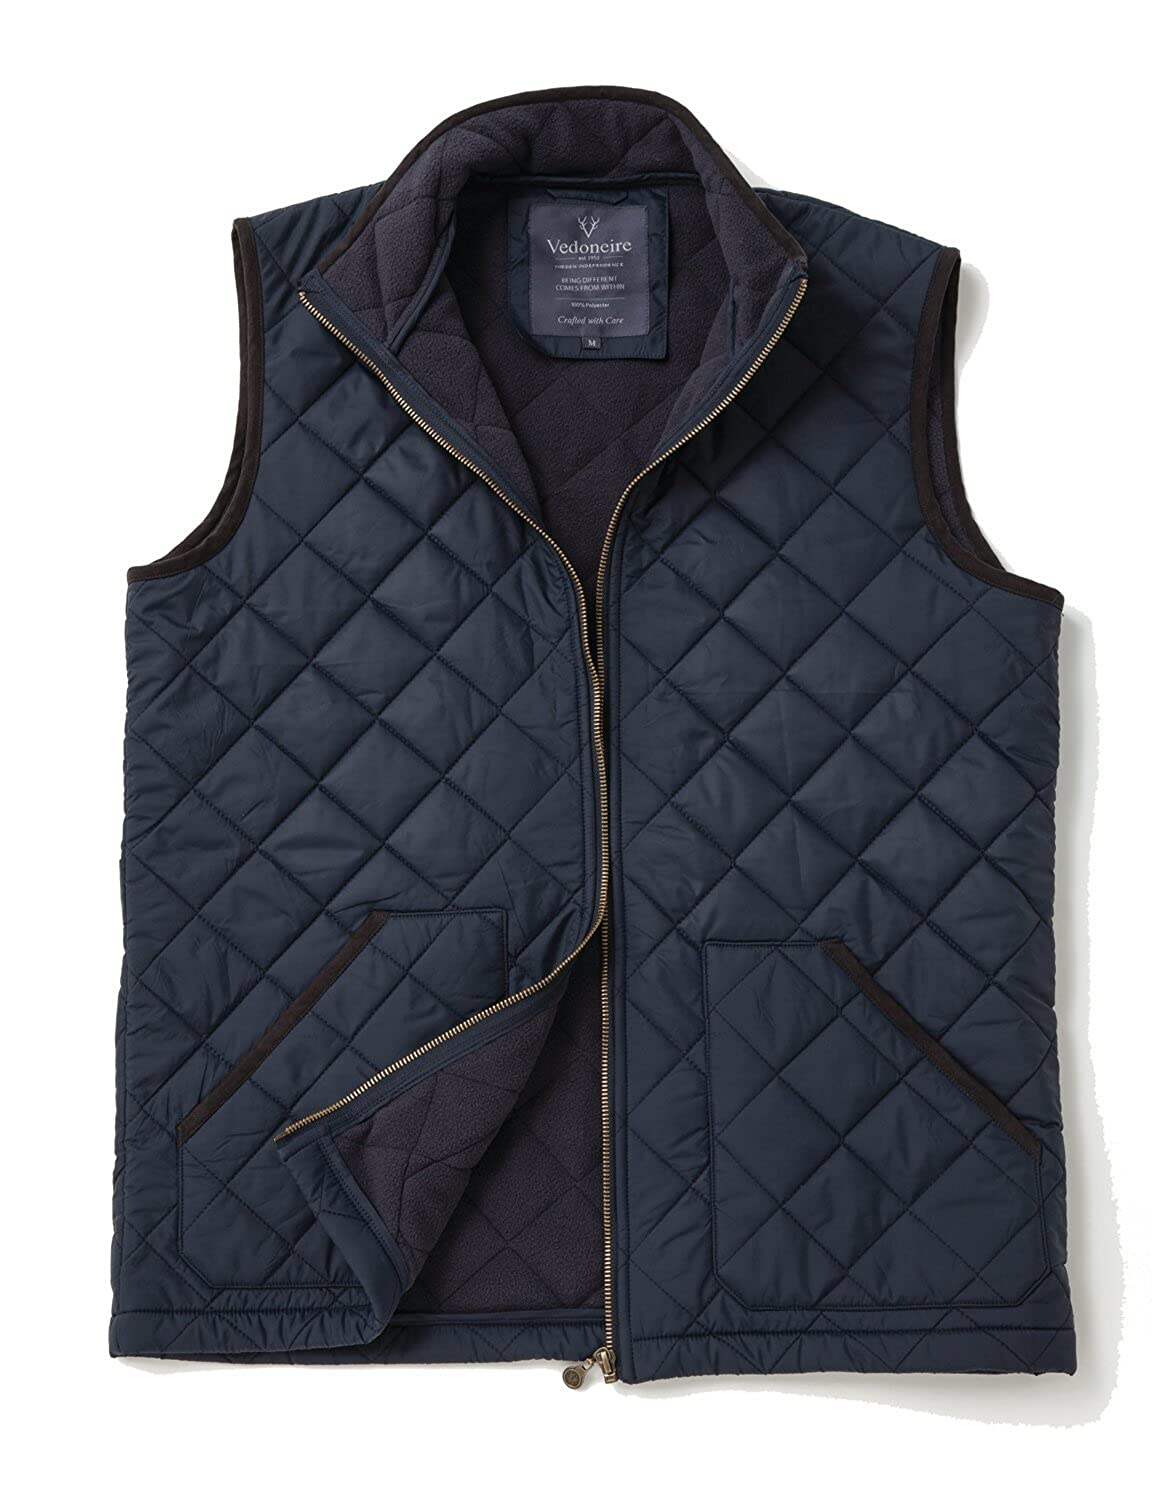 Sleeveless Coat Vedoneire Mens Fleece Lined Quilted Gilet 3024 Navy